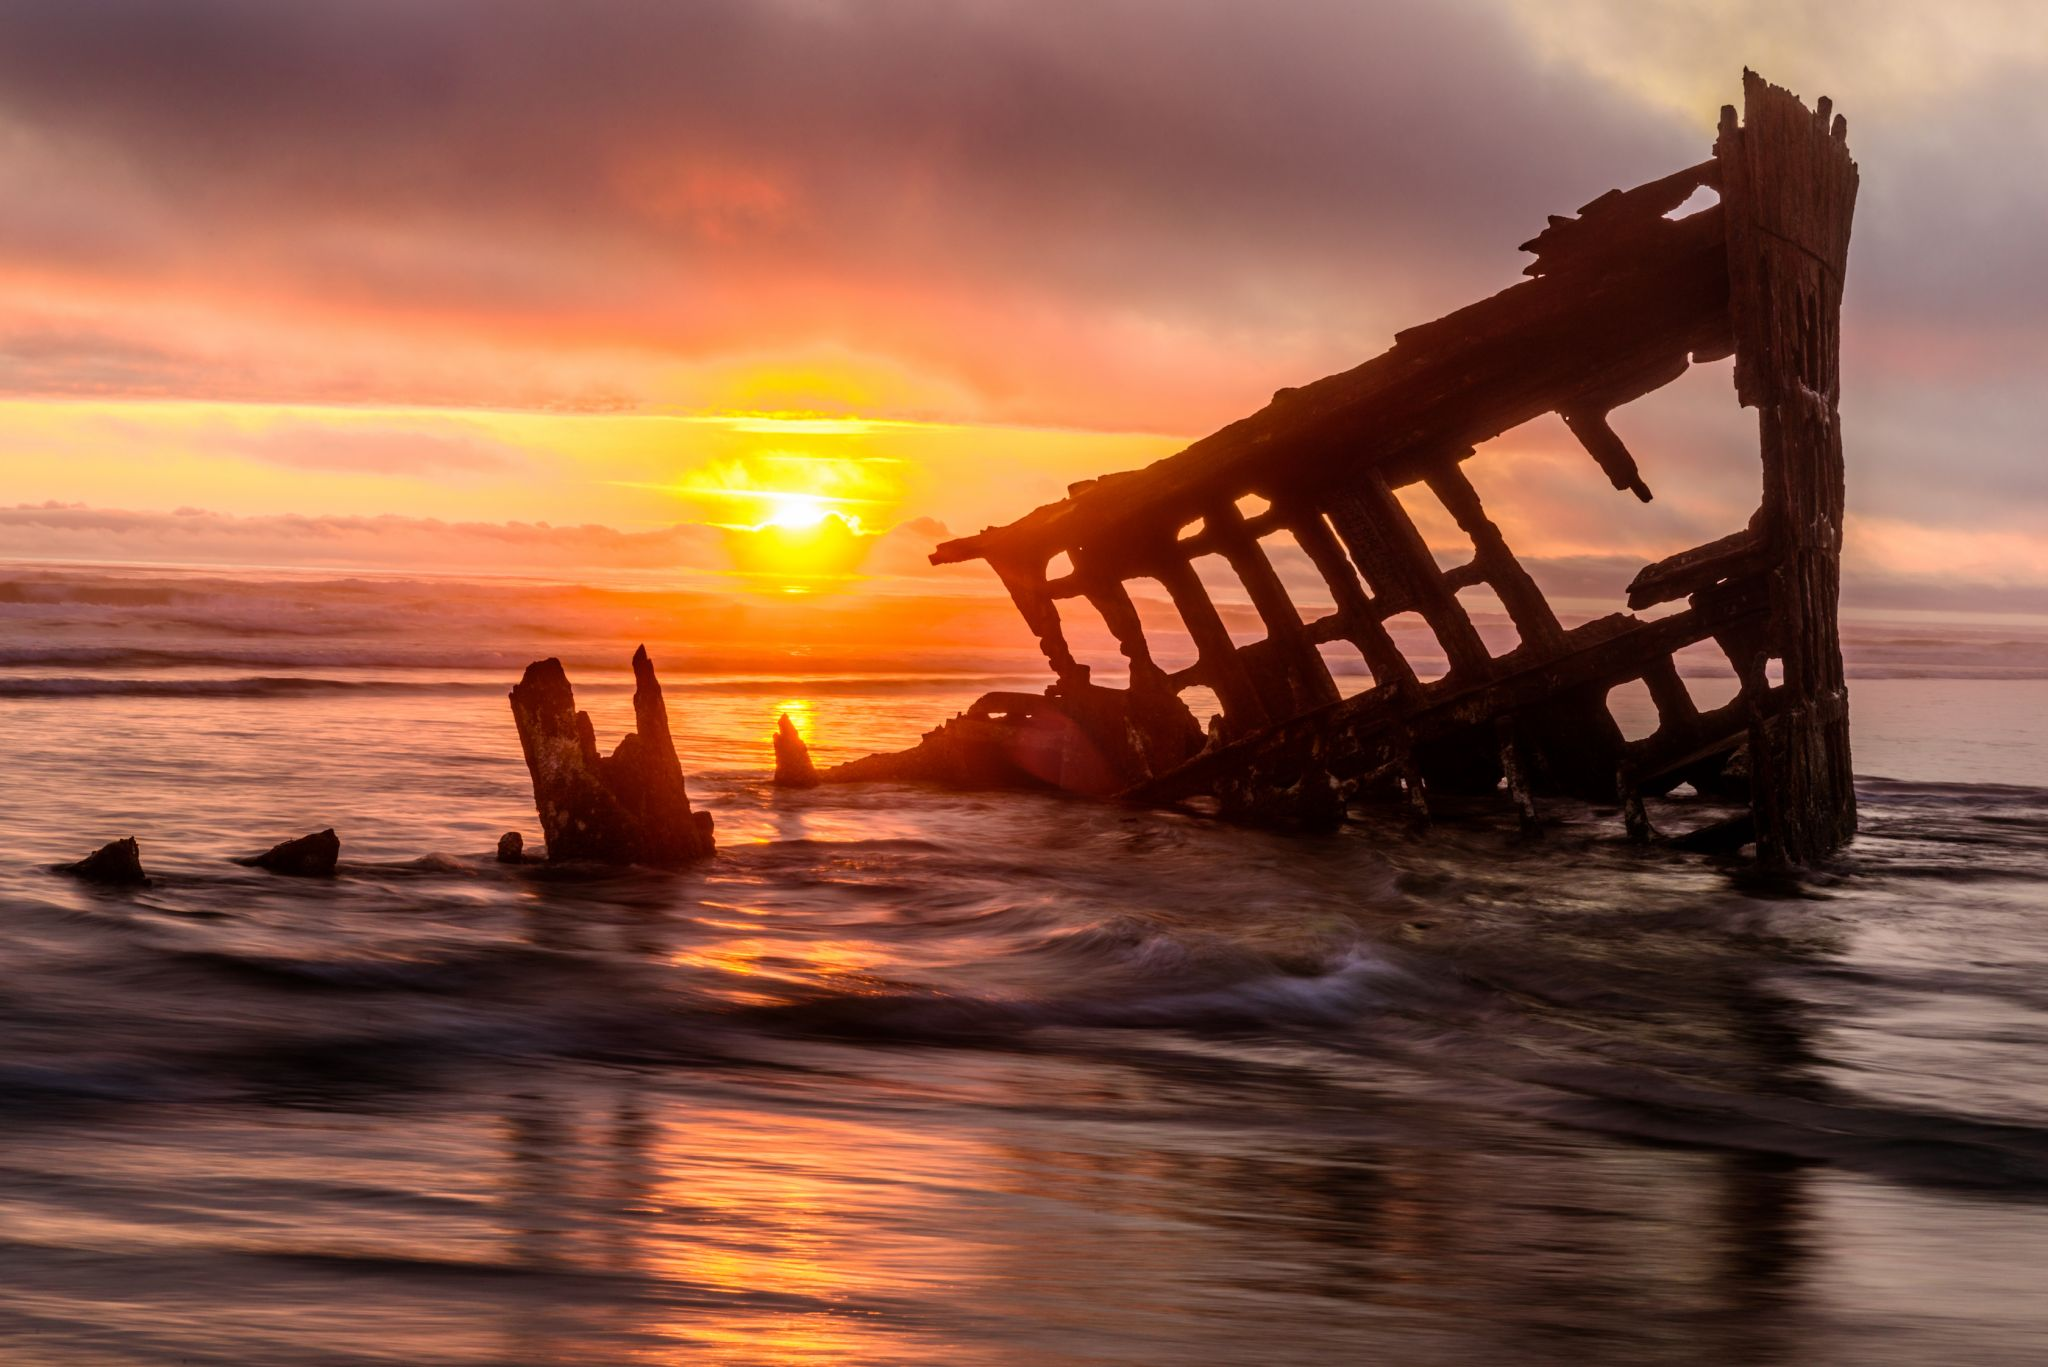 Peter Iredale Wreck, USA